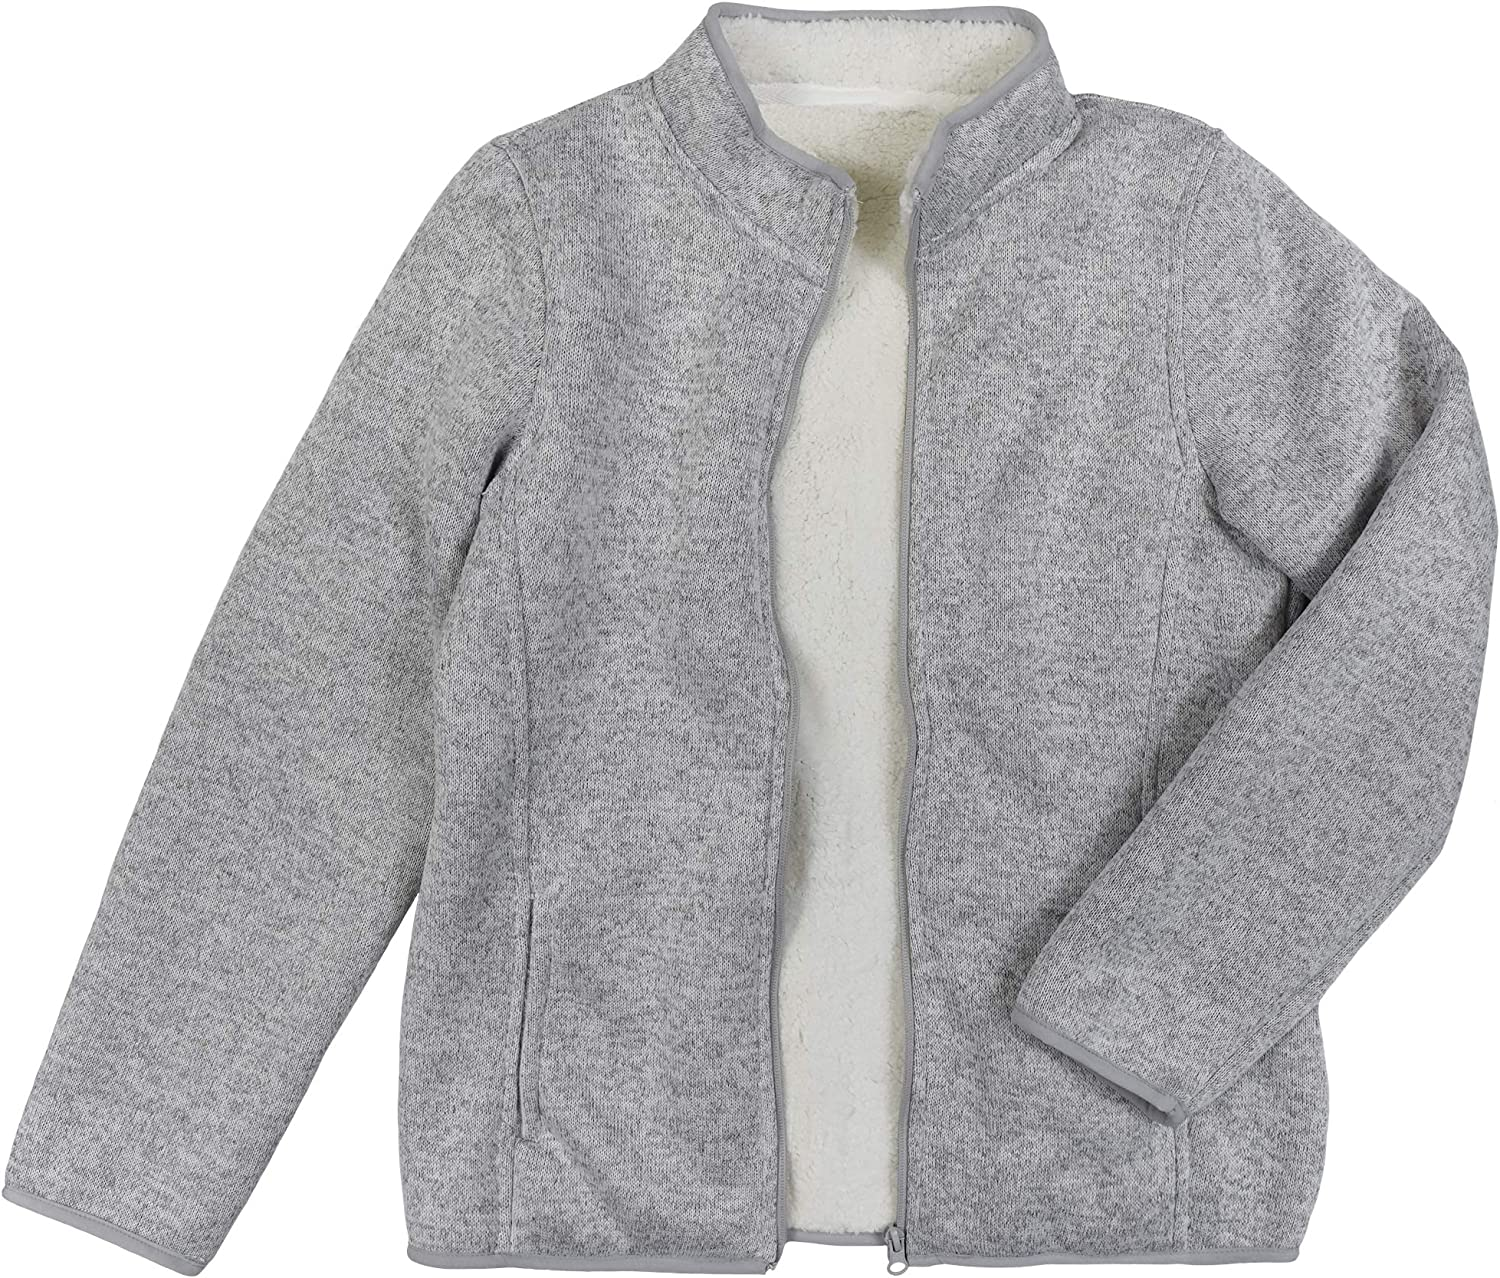 Victory Outfitters Ladies' Bonded Knit Sherpa Lined Zip Up Jacket